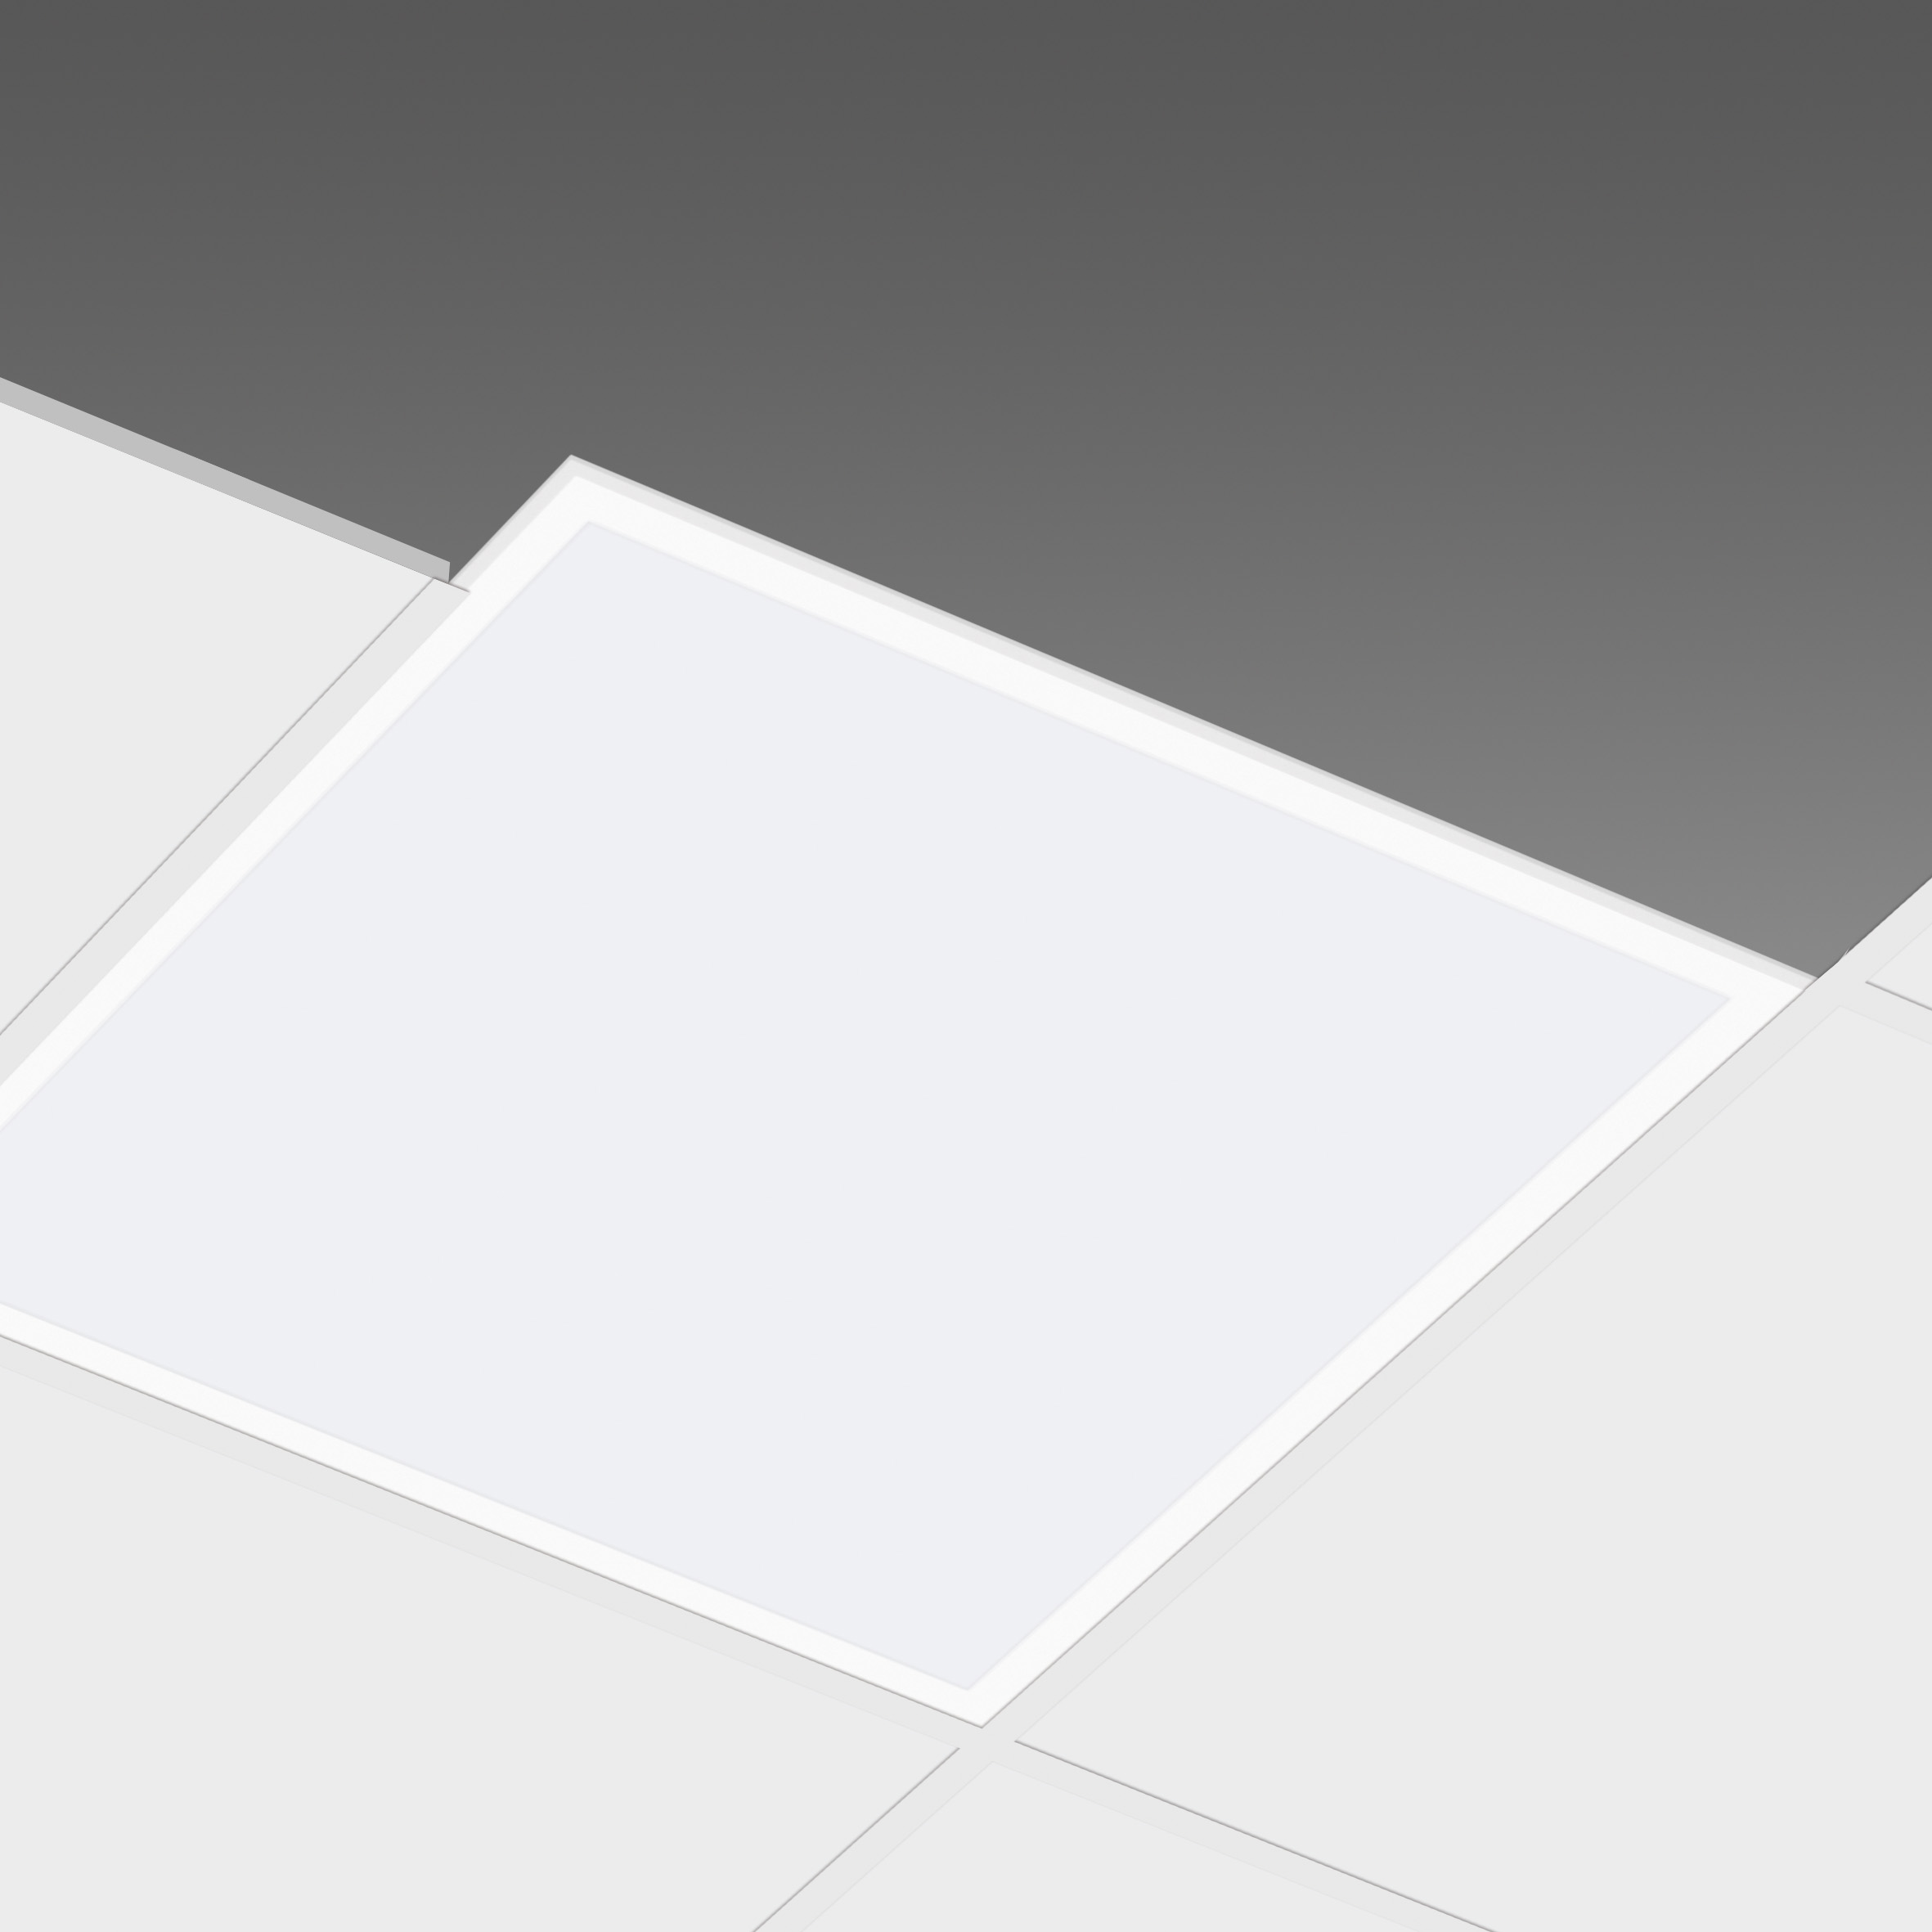 Plafoniere A Led 60x60.Led Panel 60x60 48w White Border Included Driver Led Slim